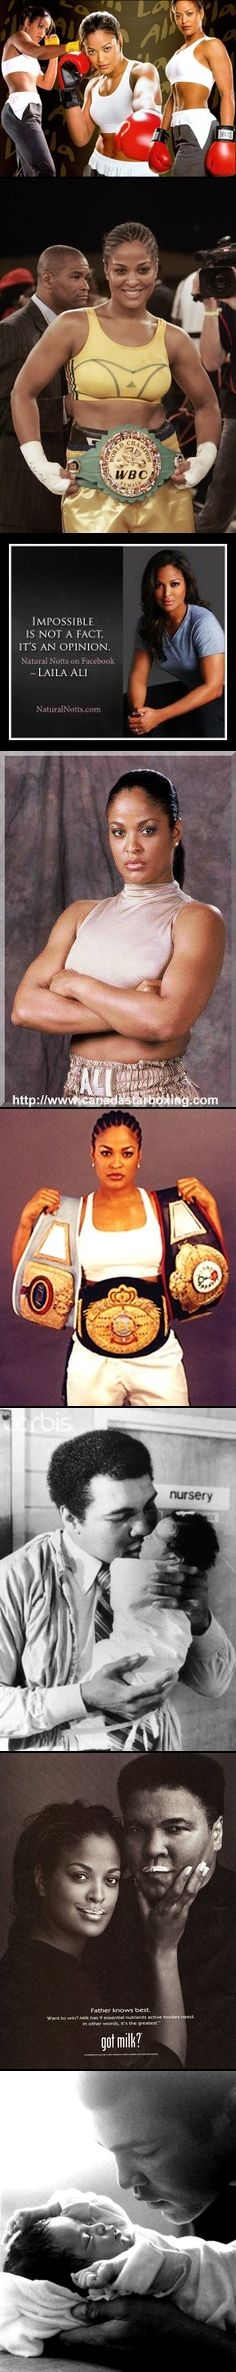 Laila Amaria Ali (born Dec 30, 1977) is a retired  American professional boxer.Ali began boxing when she was 14 yrs old.  When she first told her father, Muhammad Ali, that she was planning to box professionally, he was unhappy about her entering such a dangerous profession. However, Laila assured him she would be fighting women, not men, and that she had his genetics. CAREER BOXING RECORD - 24 WINS (21 by TKO) 0 Losses.